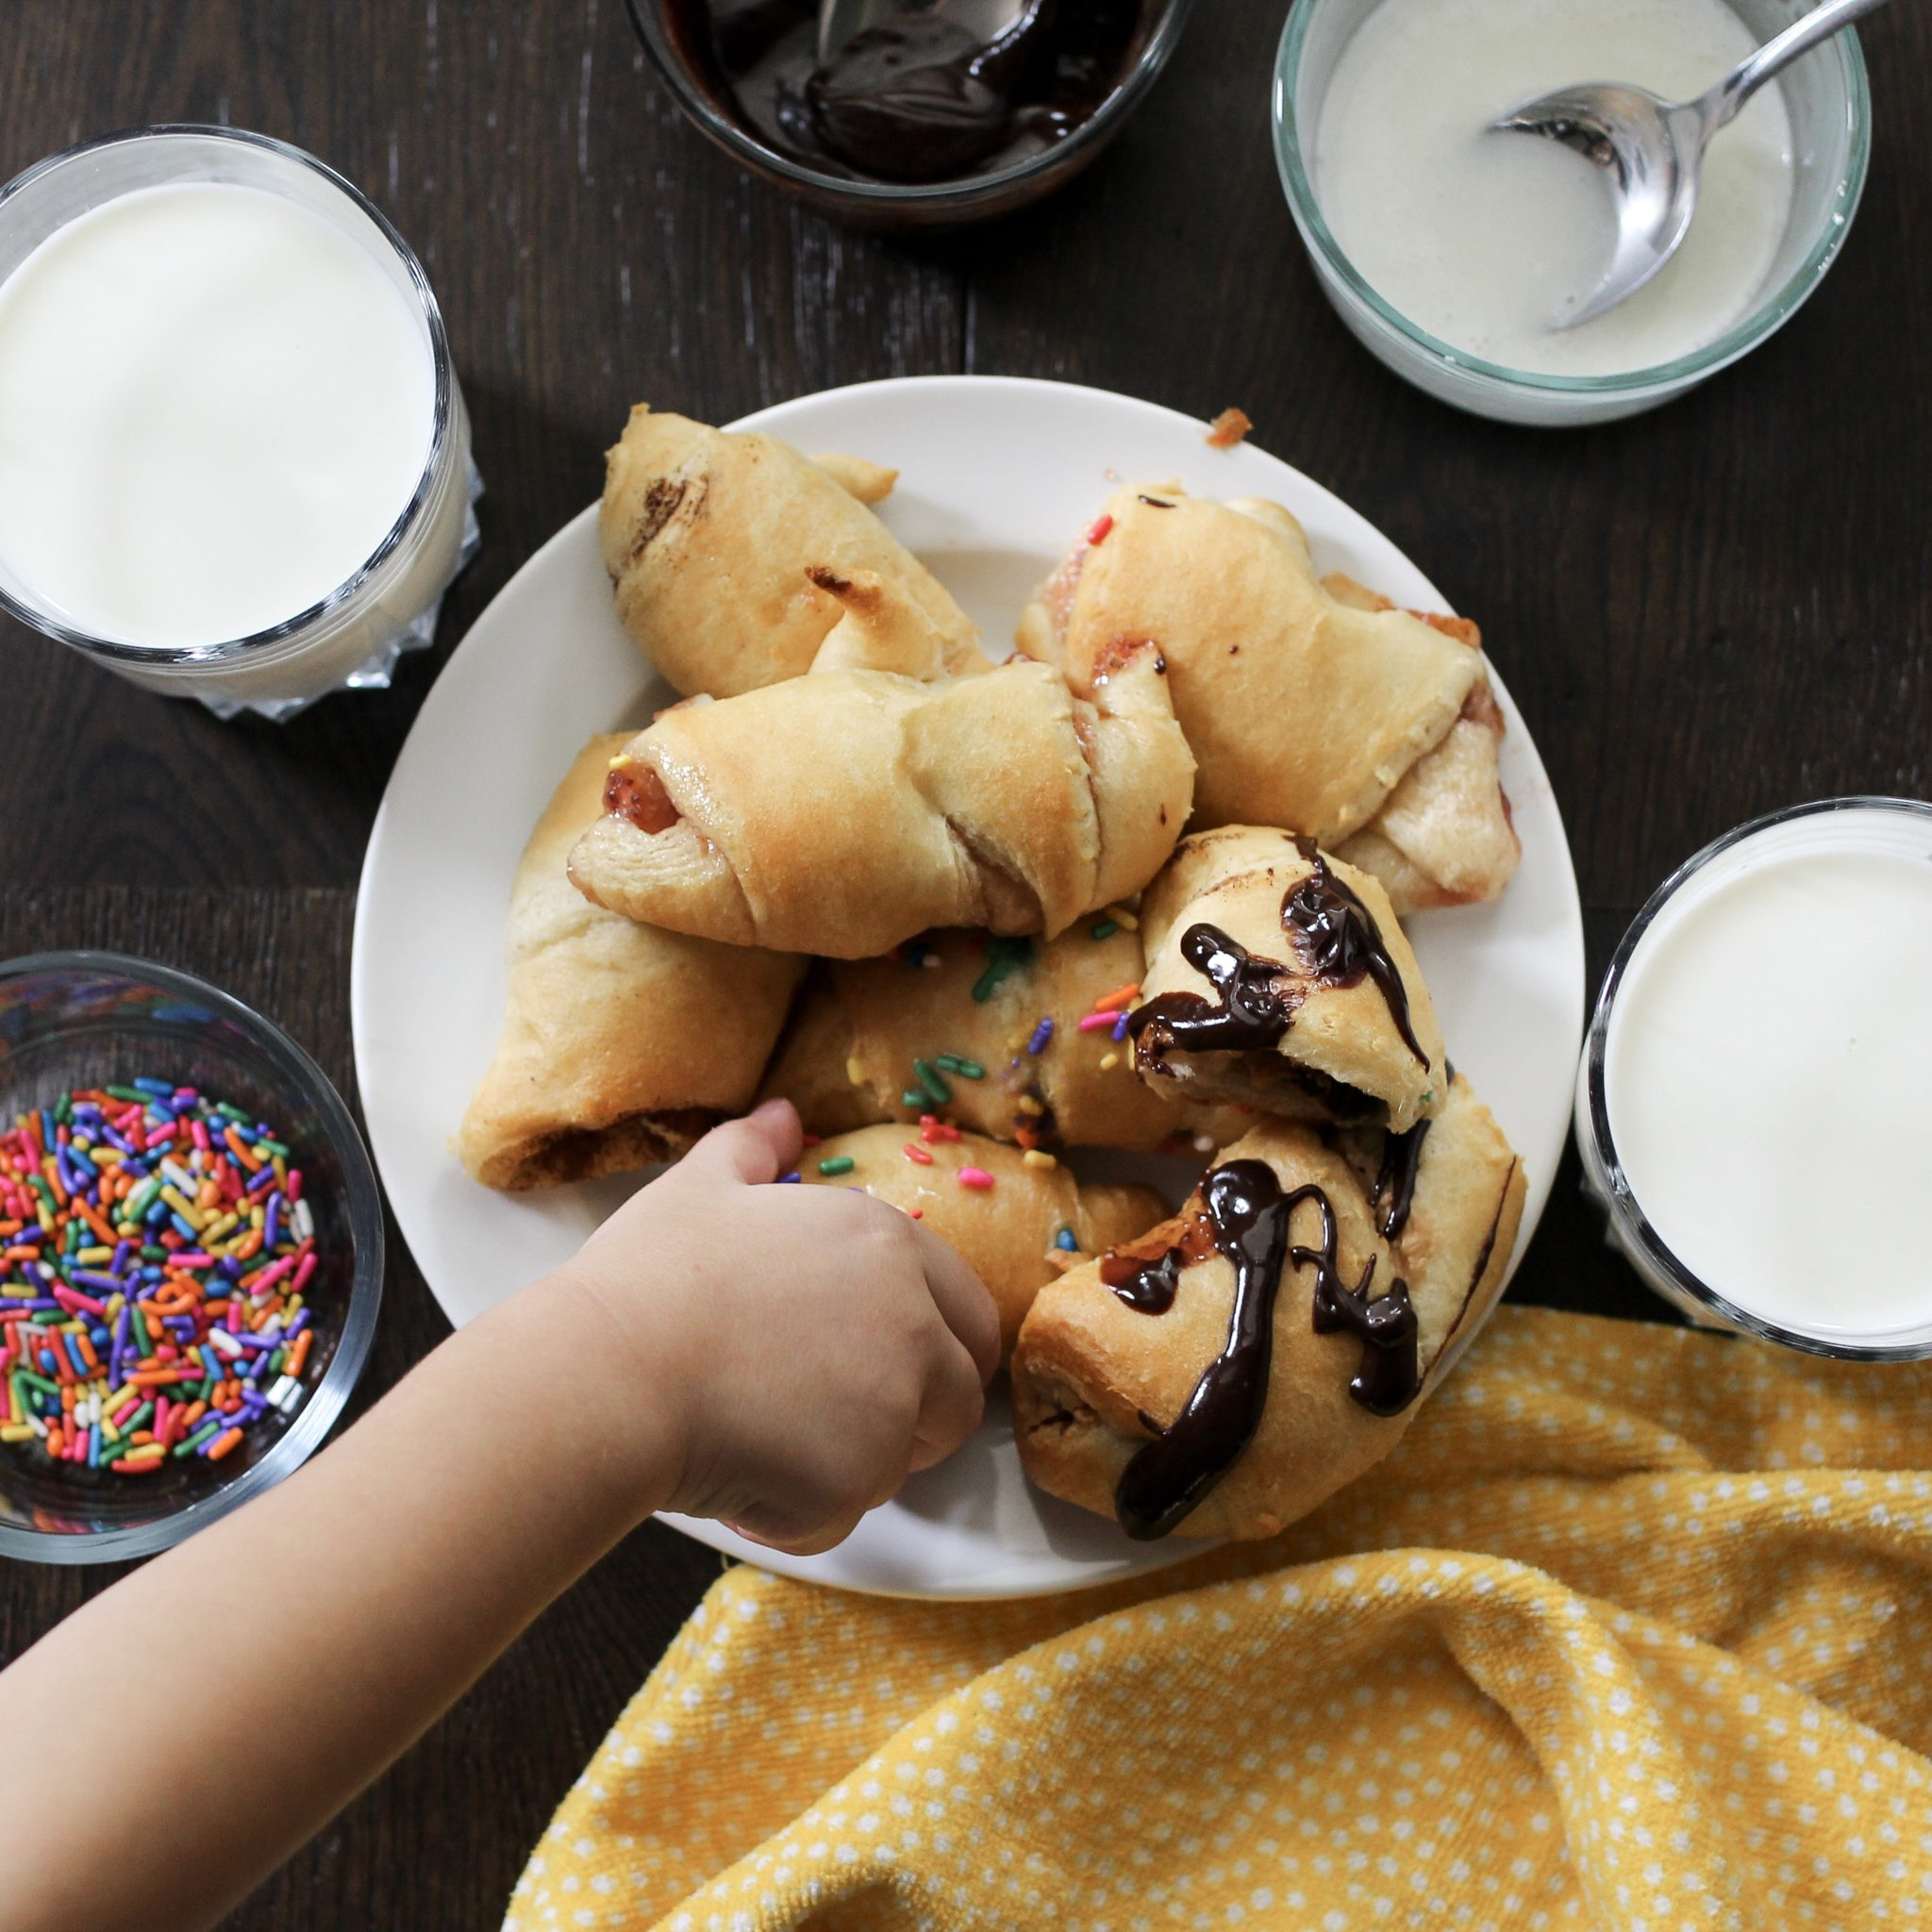 4 Ways to Make Pillsbury Crescent Rolls for an Afternoon Snack